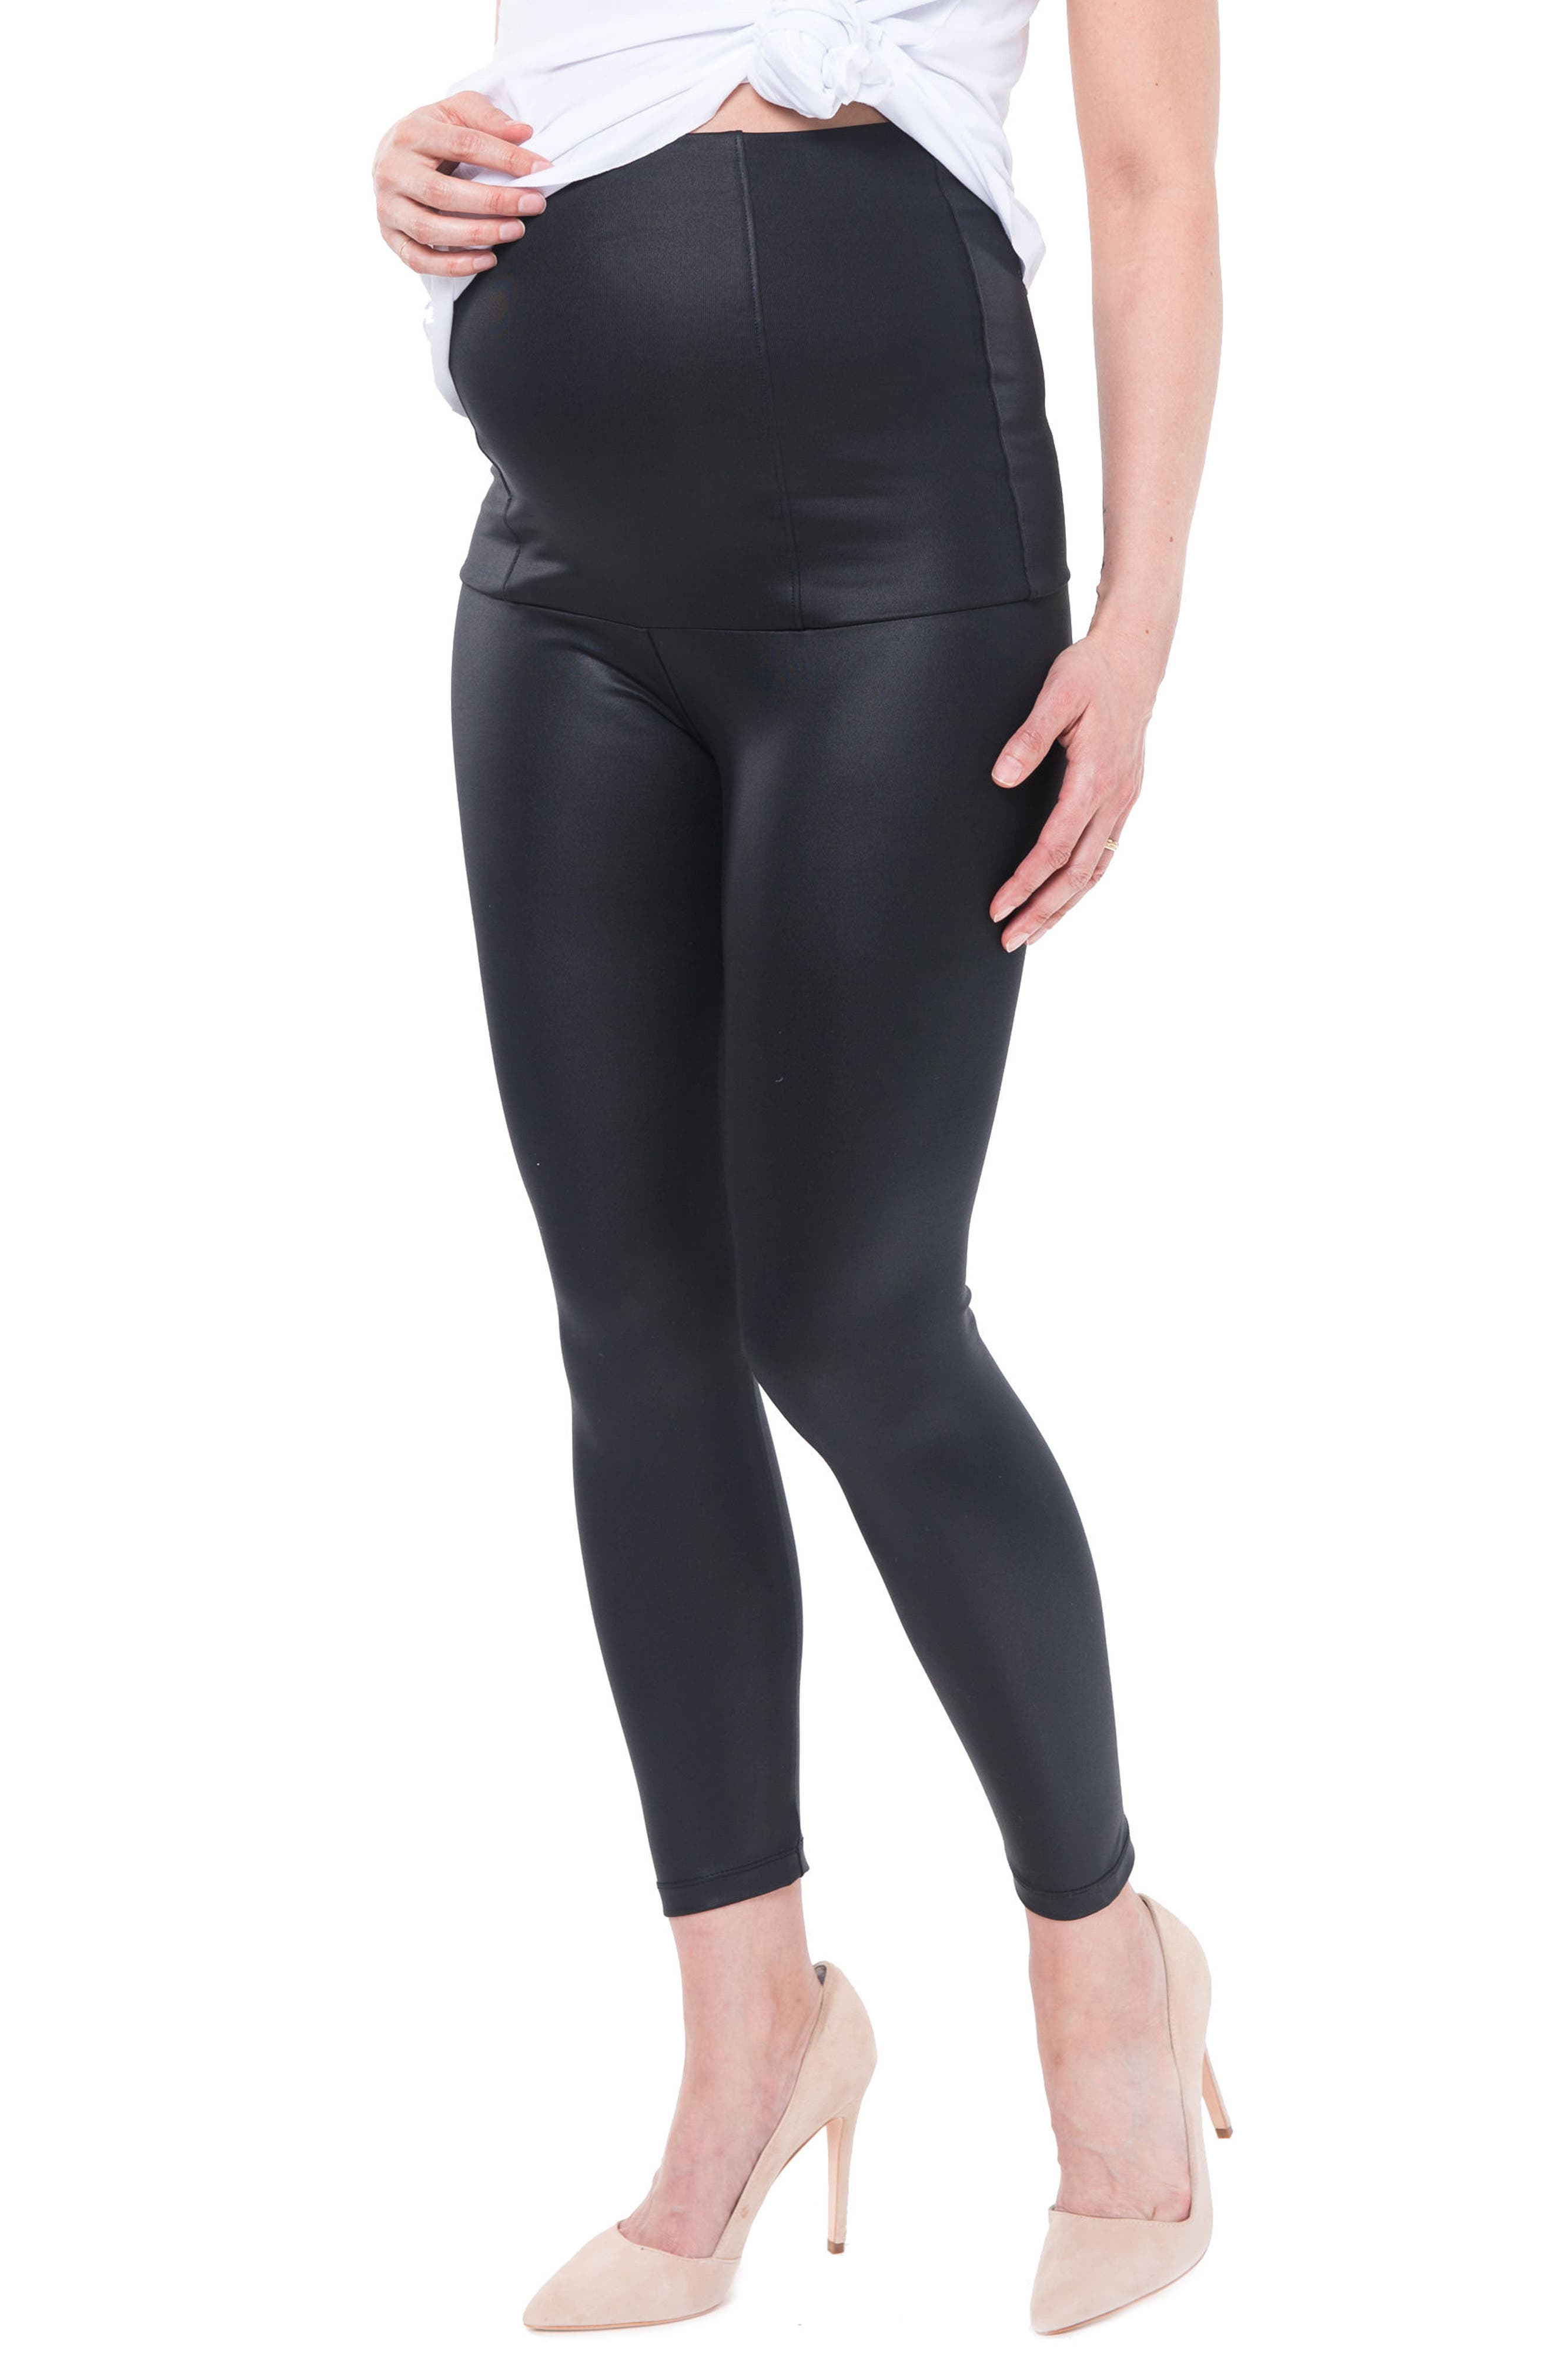 Nom Maternity Date Night Over The Belly Coated Maternity Leggings, Black